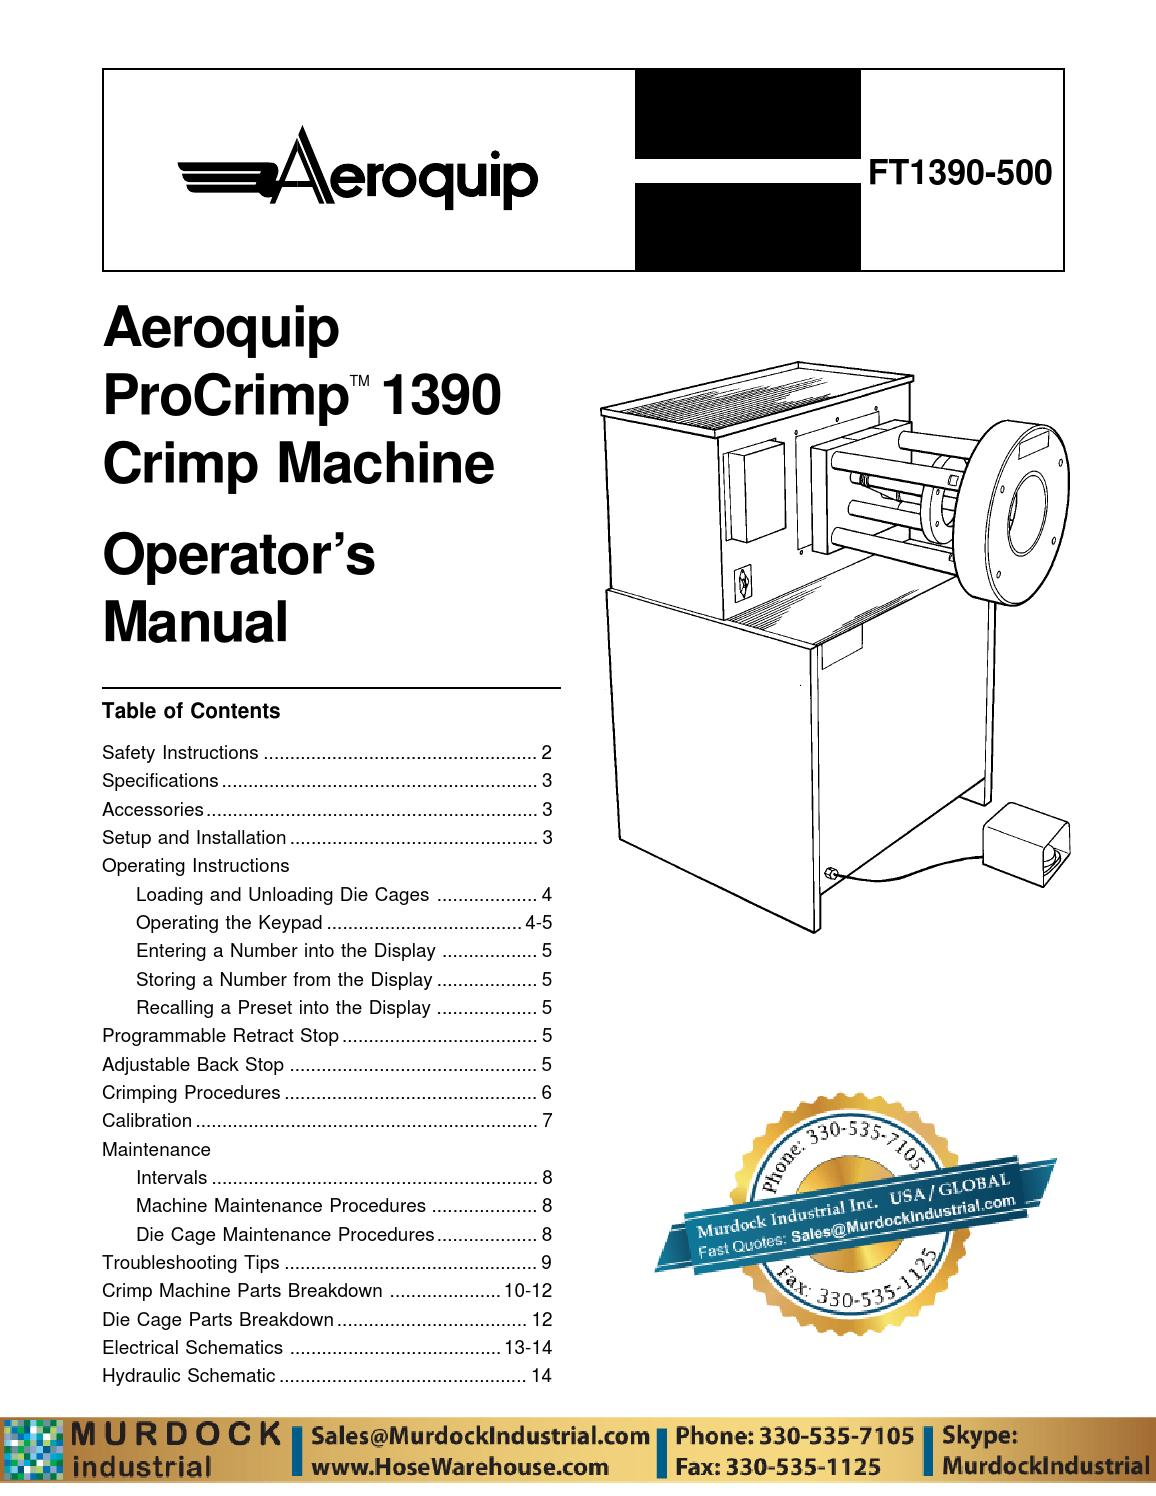 aeroquip eaton ft1390 crimp machine owners manual instructions hosewarehouse by murdock. Black Bedroom Furniture Sets. Home Design Ideas